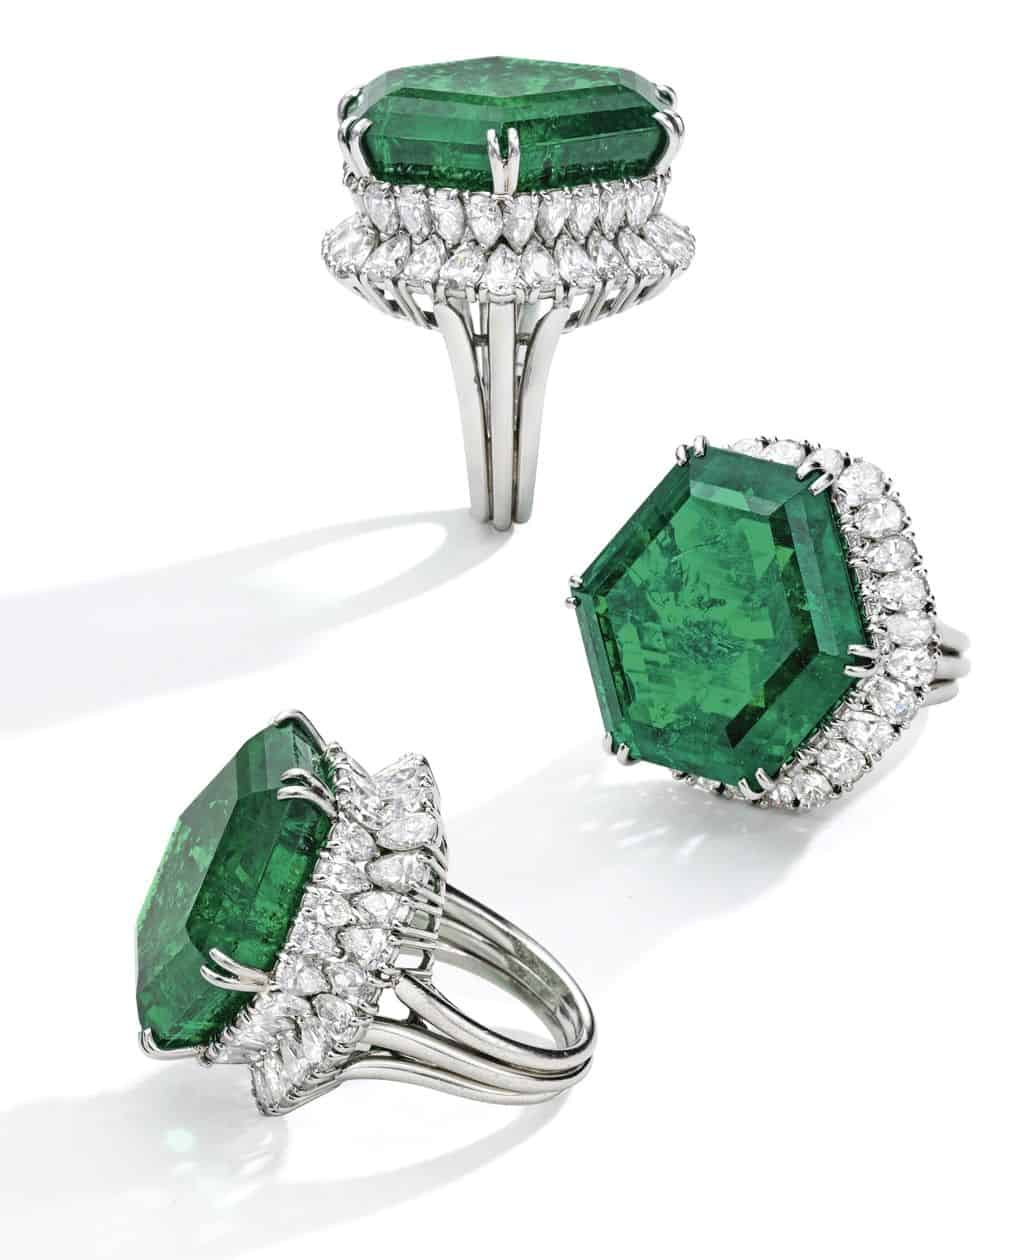 Lot 108 - Different views of the Stotesbury Emerald Ring by Harry Winston